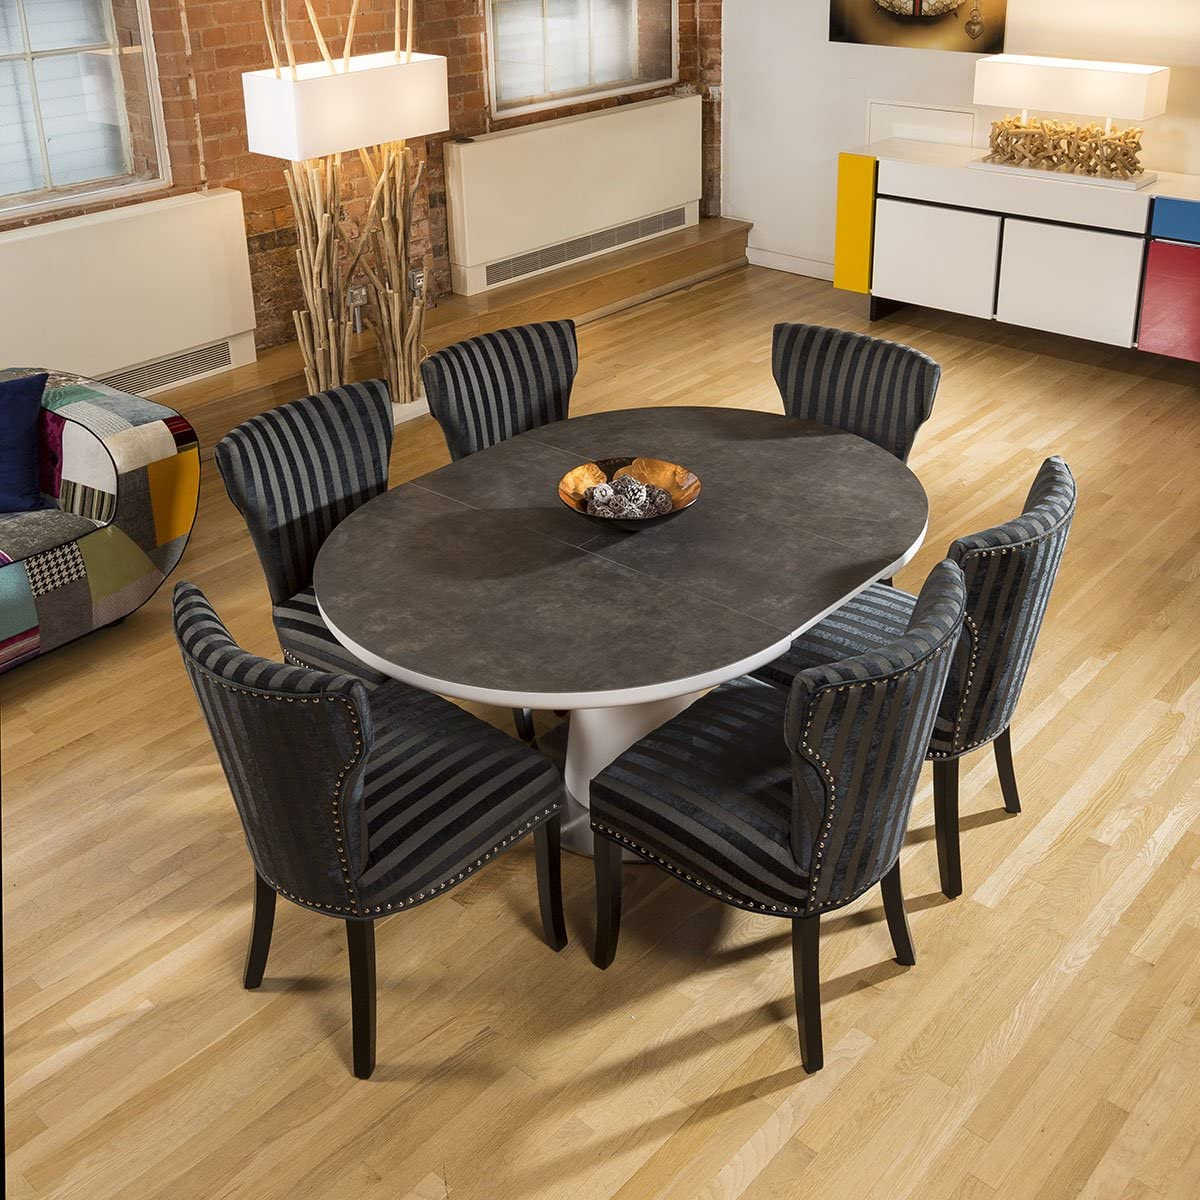 Ceramic Round Oval Extendable Dining Table and 9 Striped Fabric ...